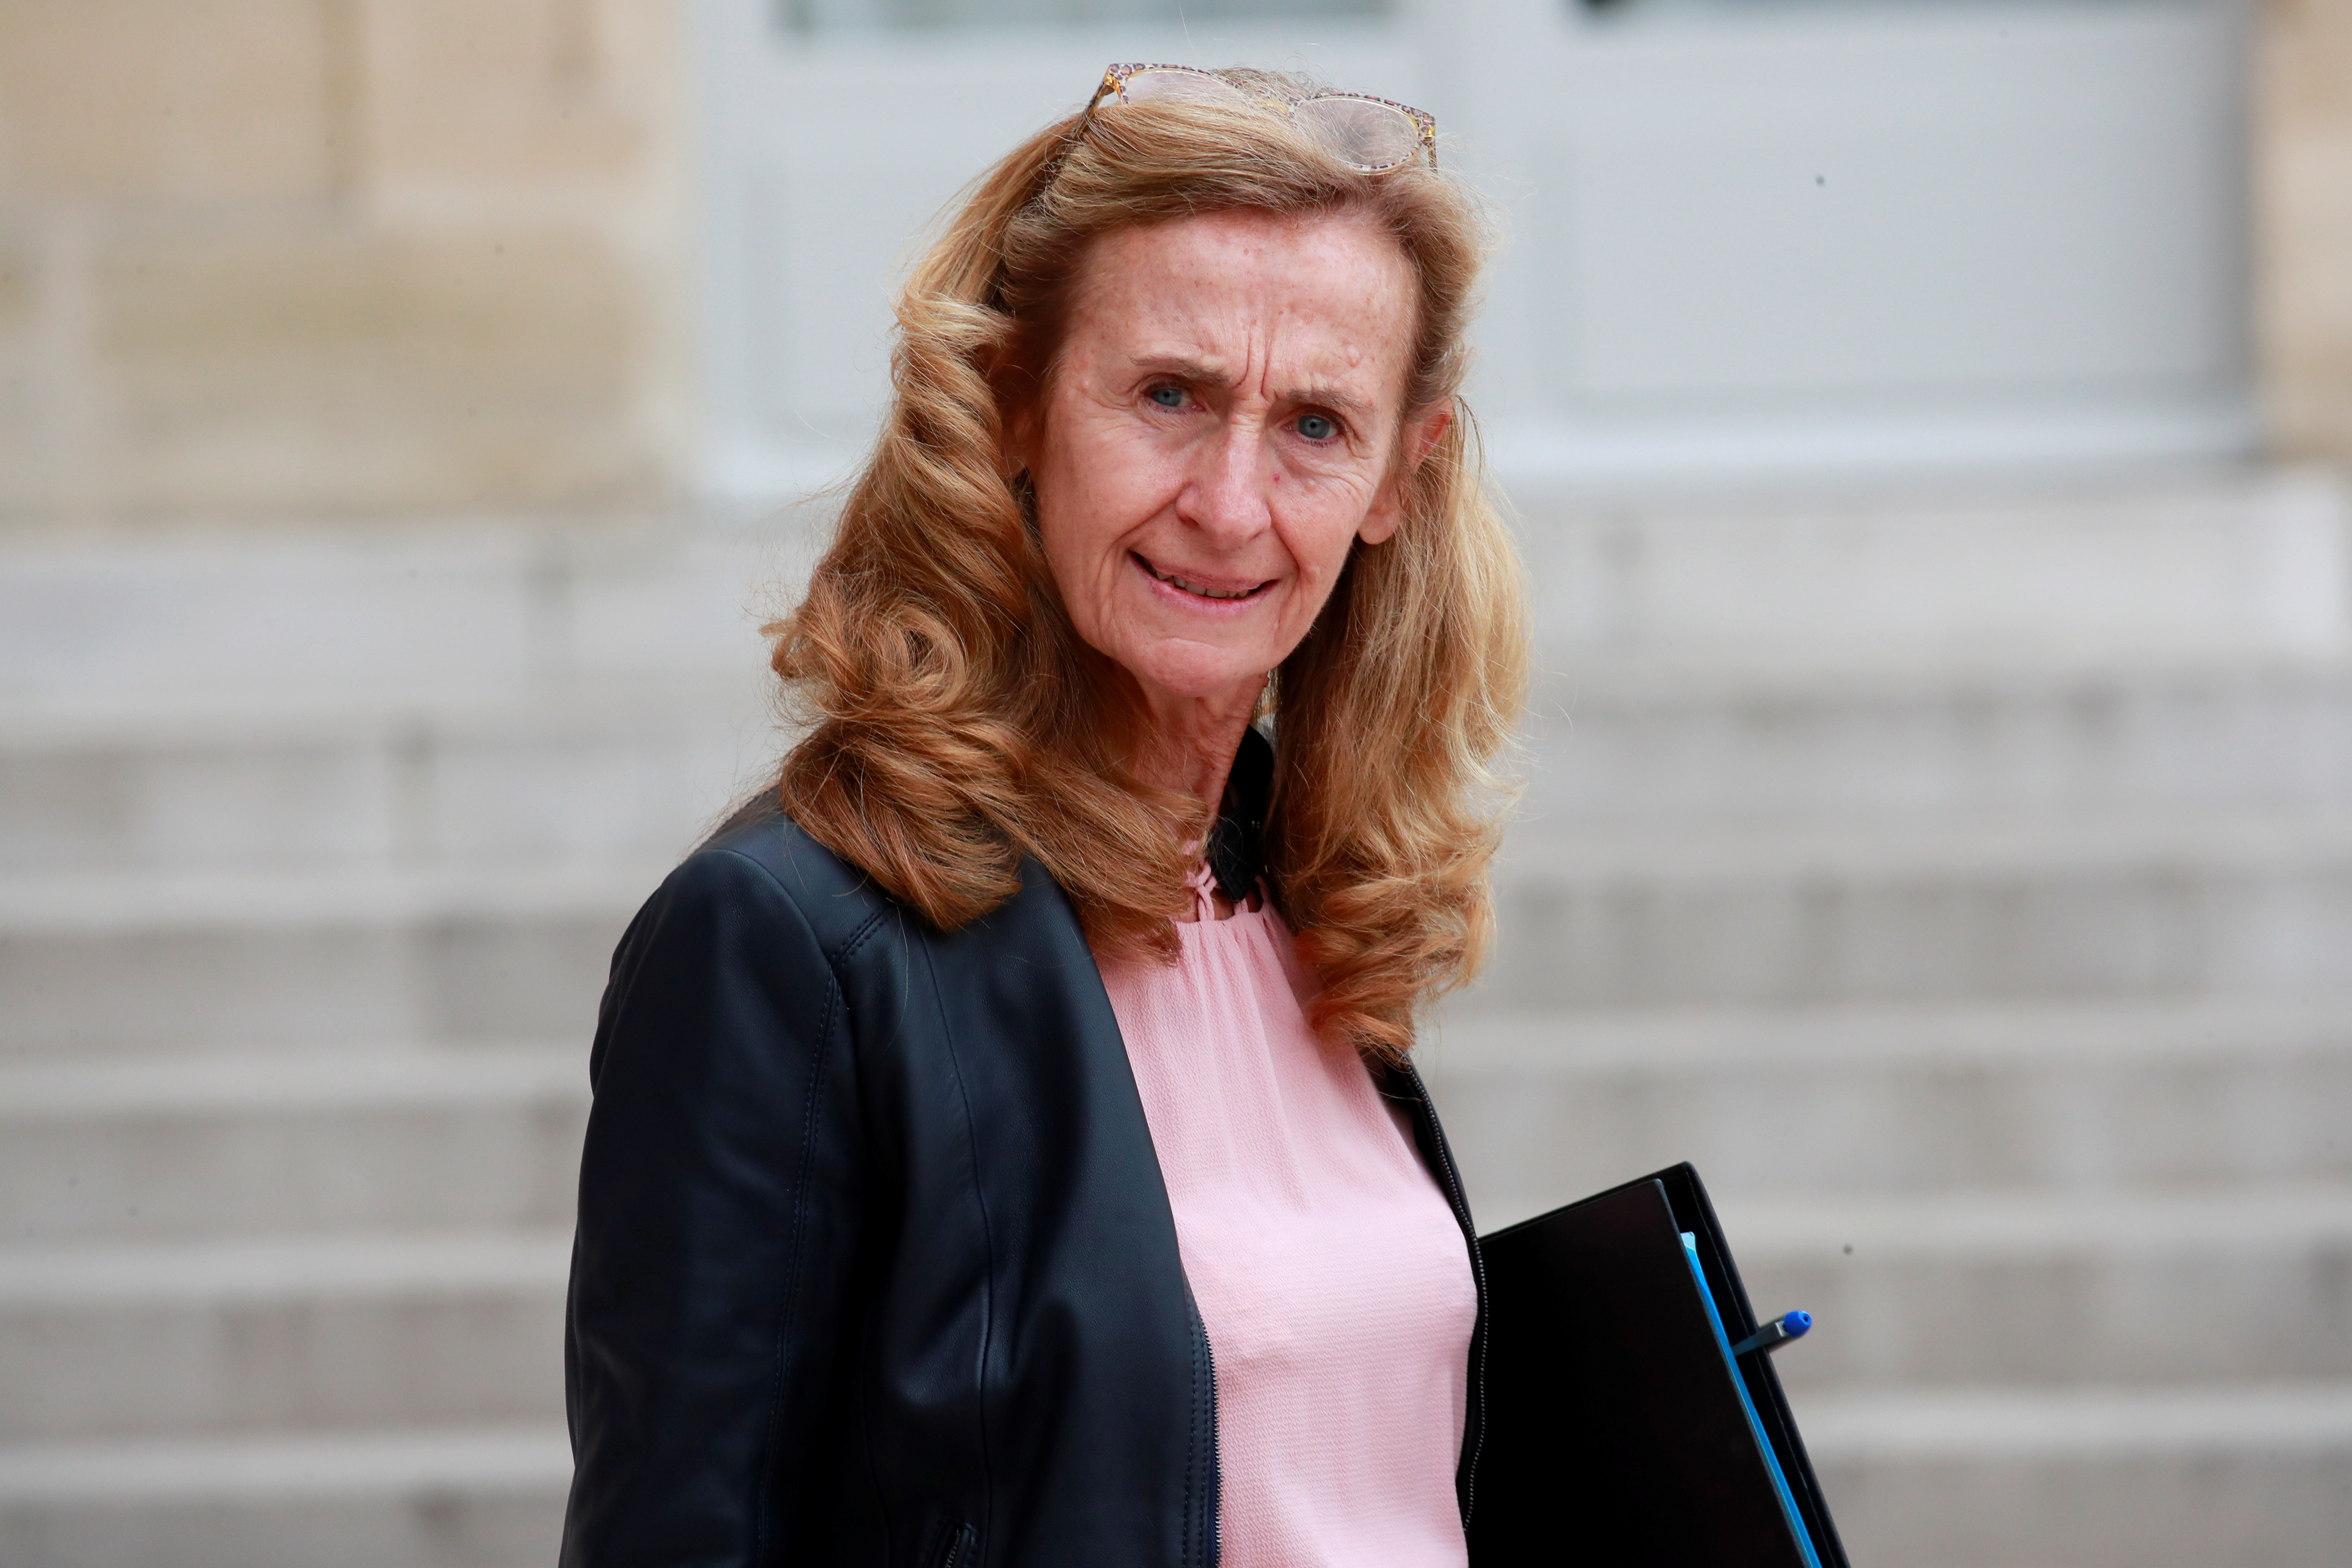 French Justice Minister Nicole Belloubet leaves following the weekly cabinet meeting at the Elysee Palace in Paris, France, Oct. 17, 2018.